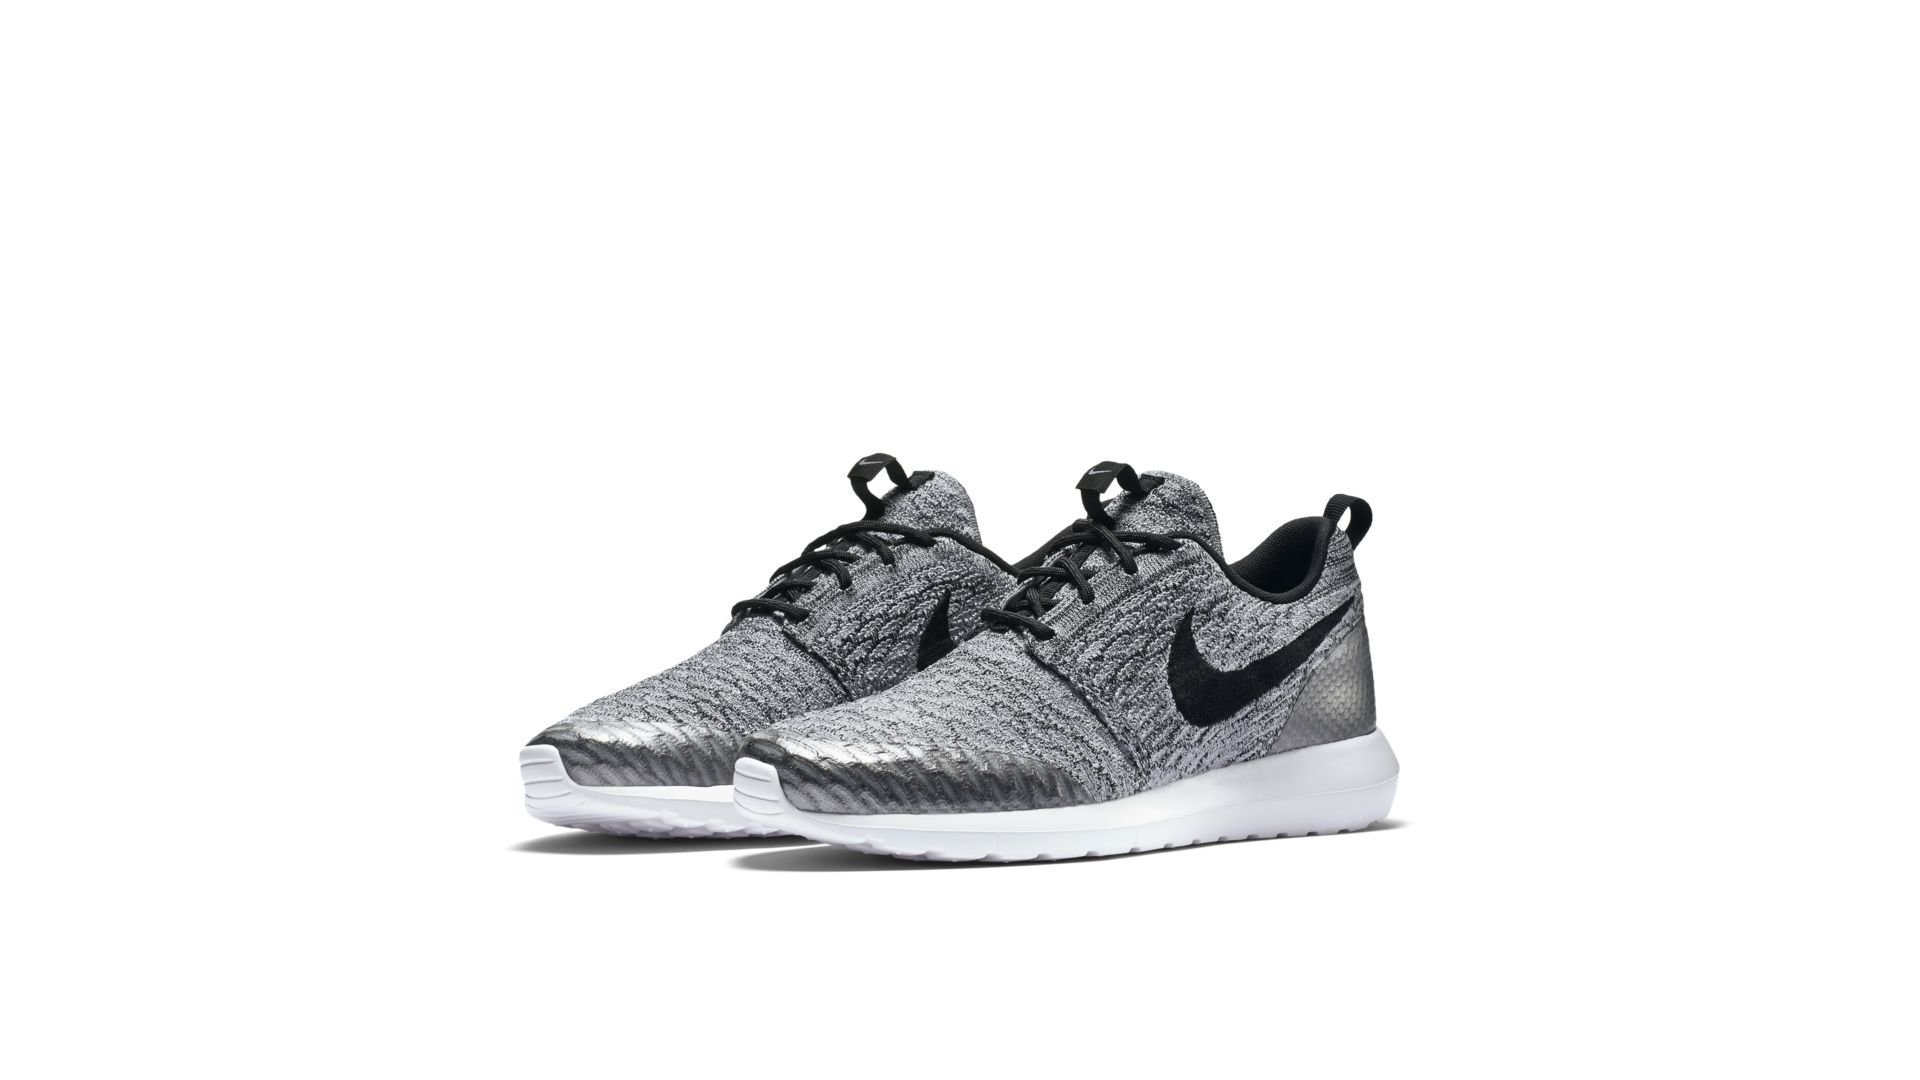 Nike Roshe Run Flyknit NM Wolf Grey (816531-002)